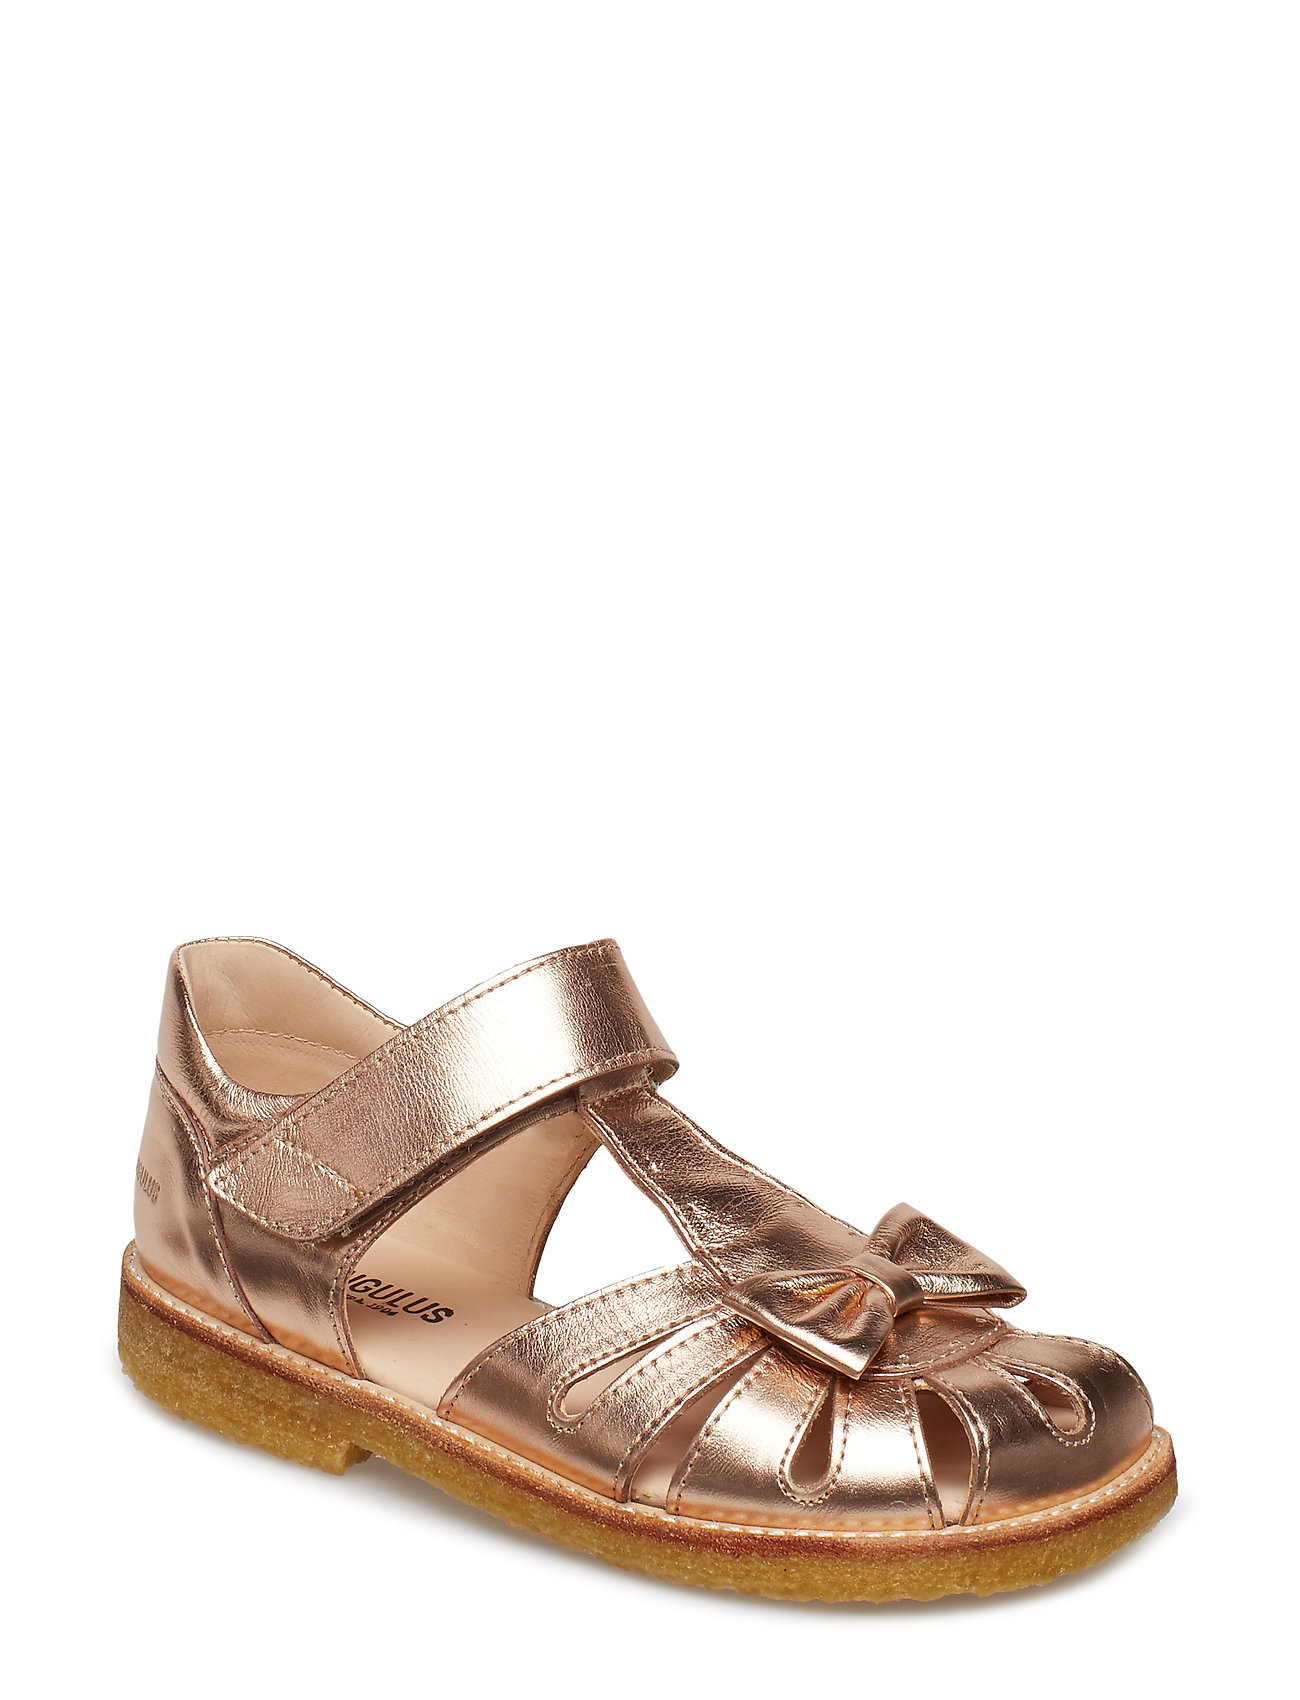 ANGULUS Sandals - flat - 1311 ROSE COPPER